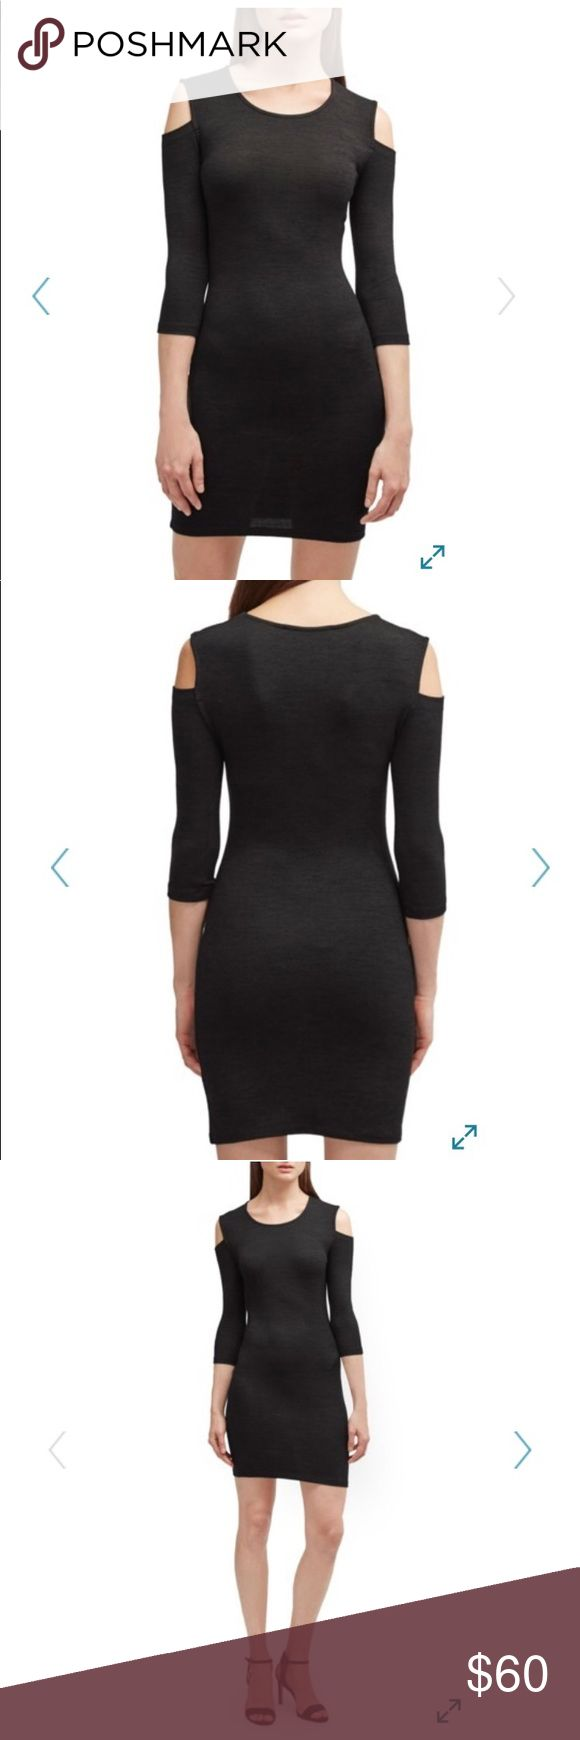 🔥French connection🔥 Sweater body dress. Size med Brand new French connection body con dress. Size medium. French Connection Dresses Mini